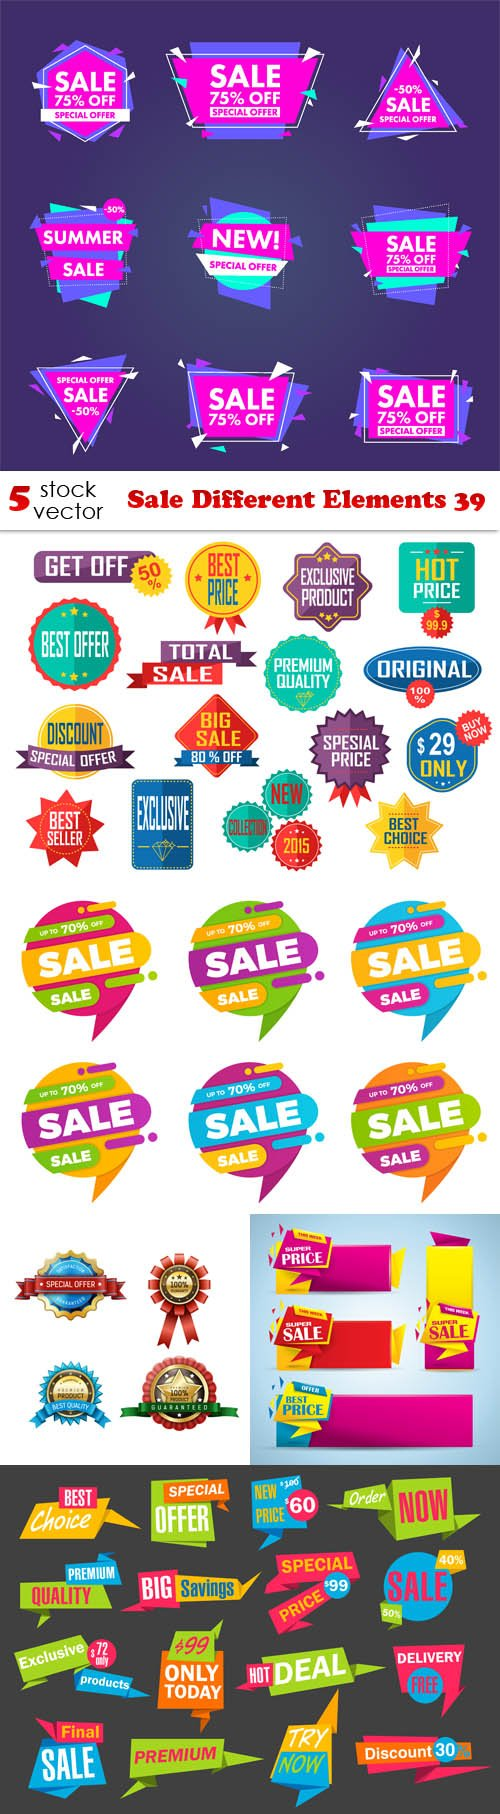 Vectors - Sale Different Elements 39